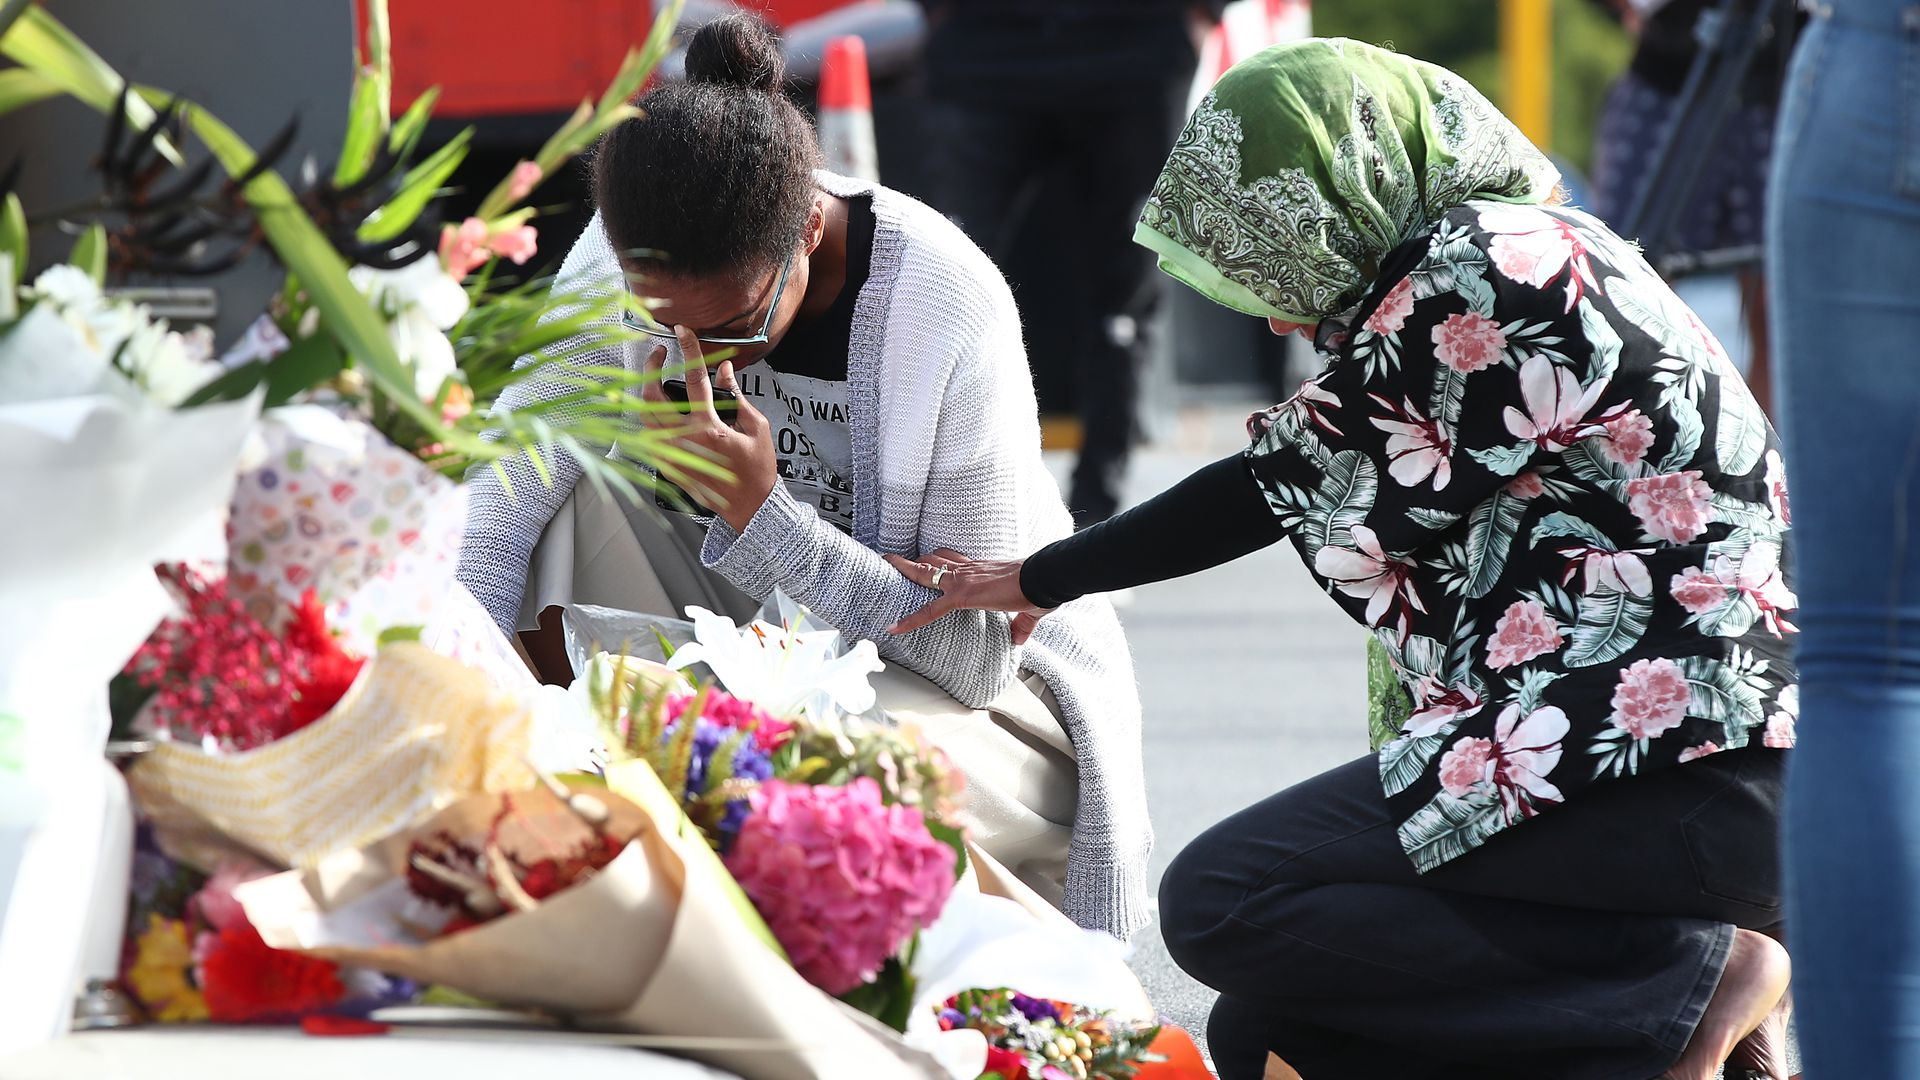 New Zealand Attack Video Photo: Four Egyptians Killed In New Zealand Terrorist Attack